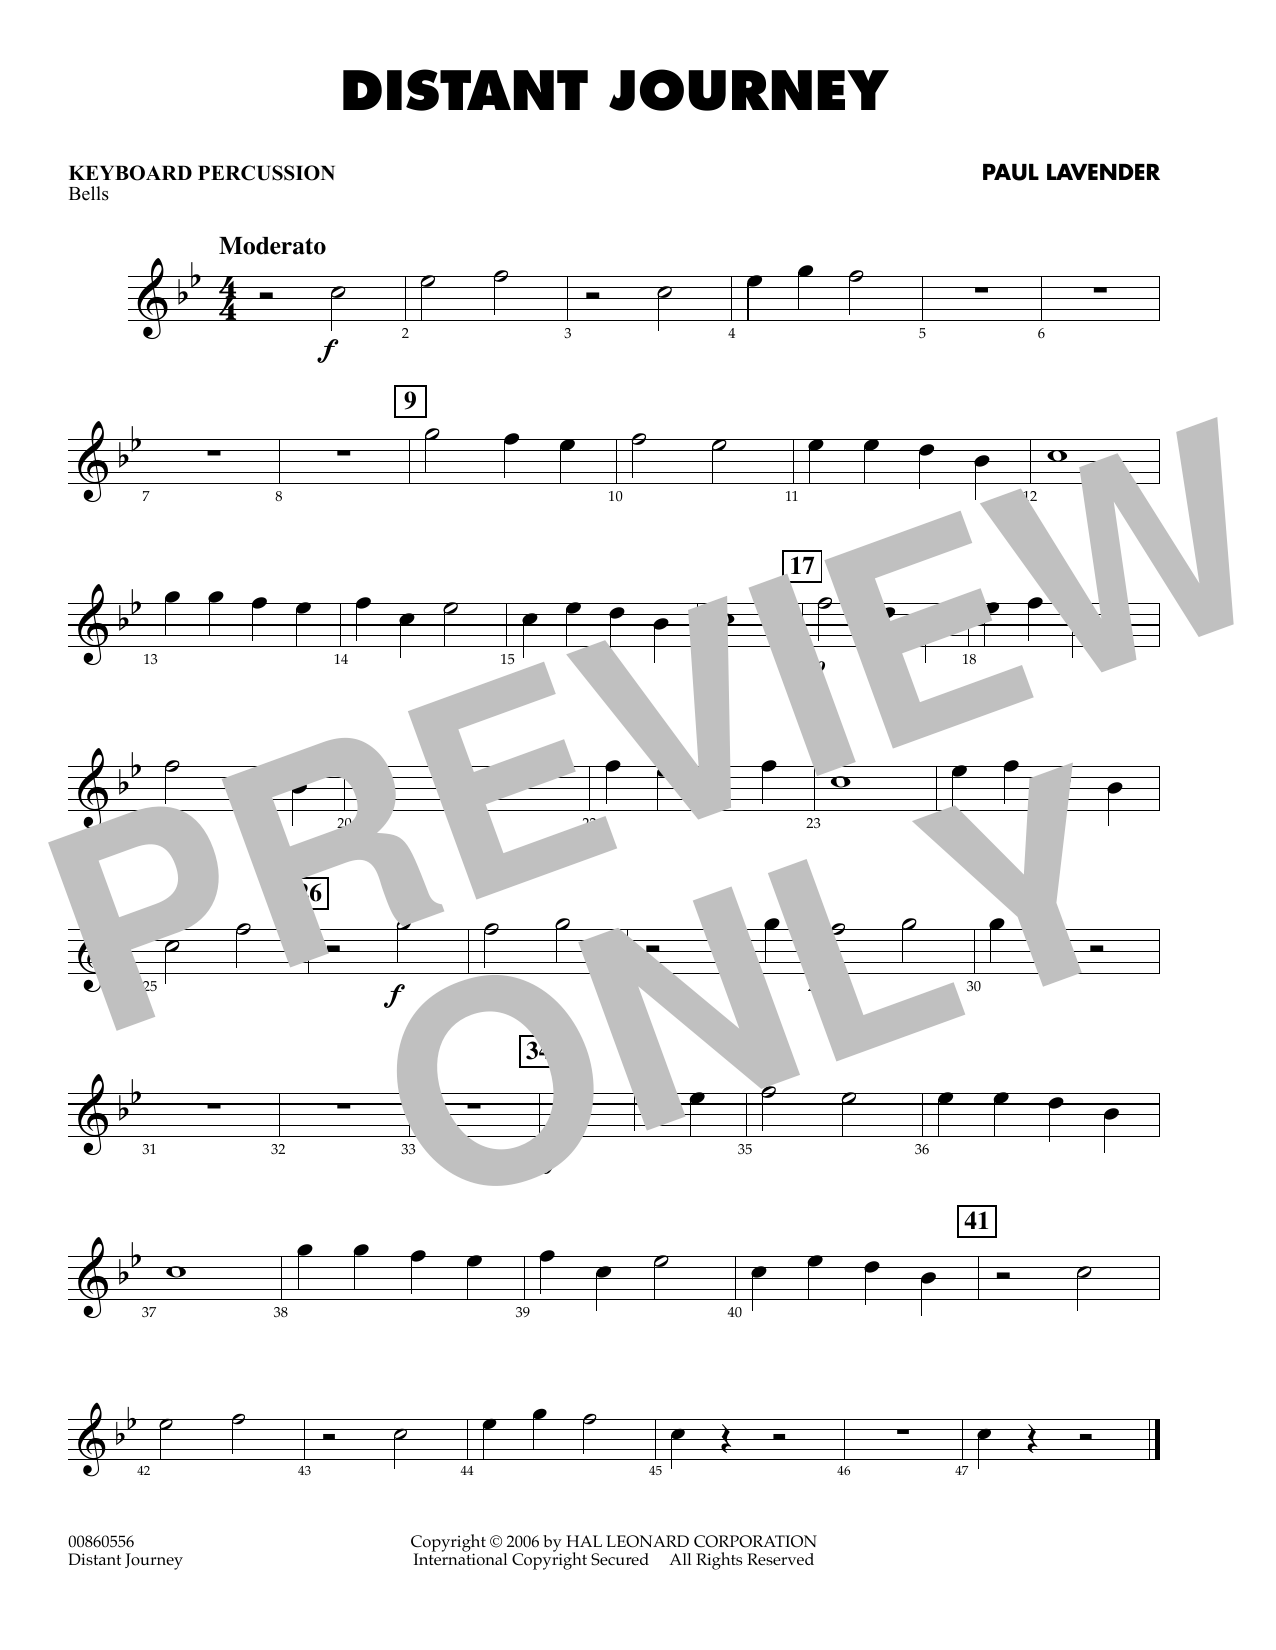 Paul Lavender Distant Journey - Keyboard Percussion sheet music preview music notes and score for Concert Band including 1 page(s)